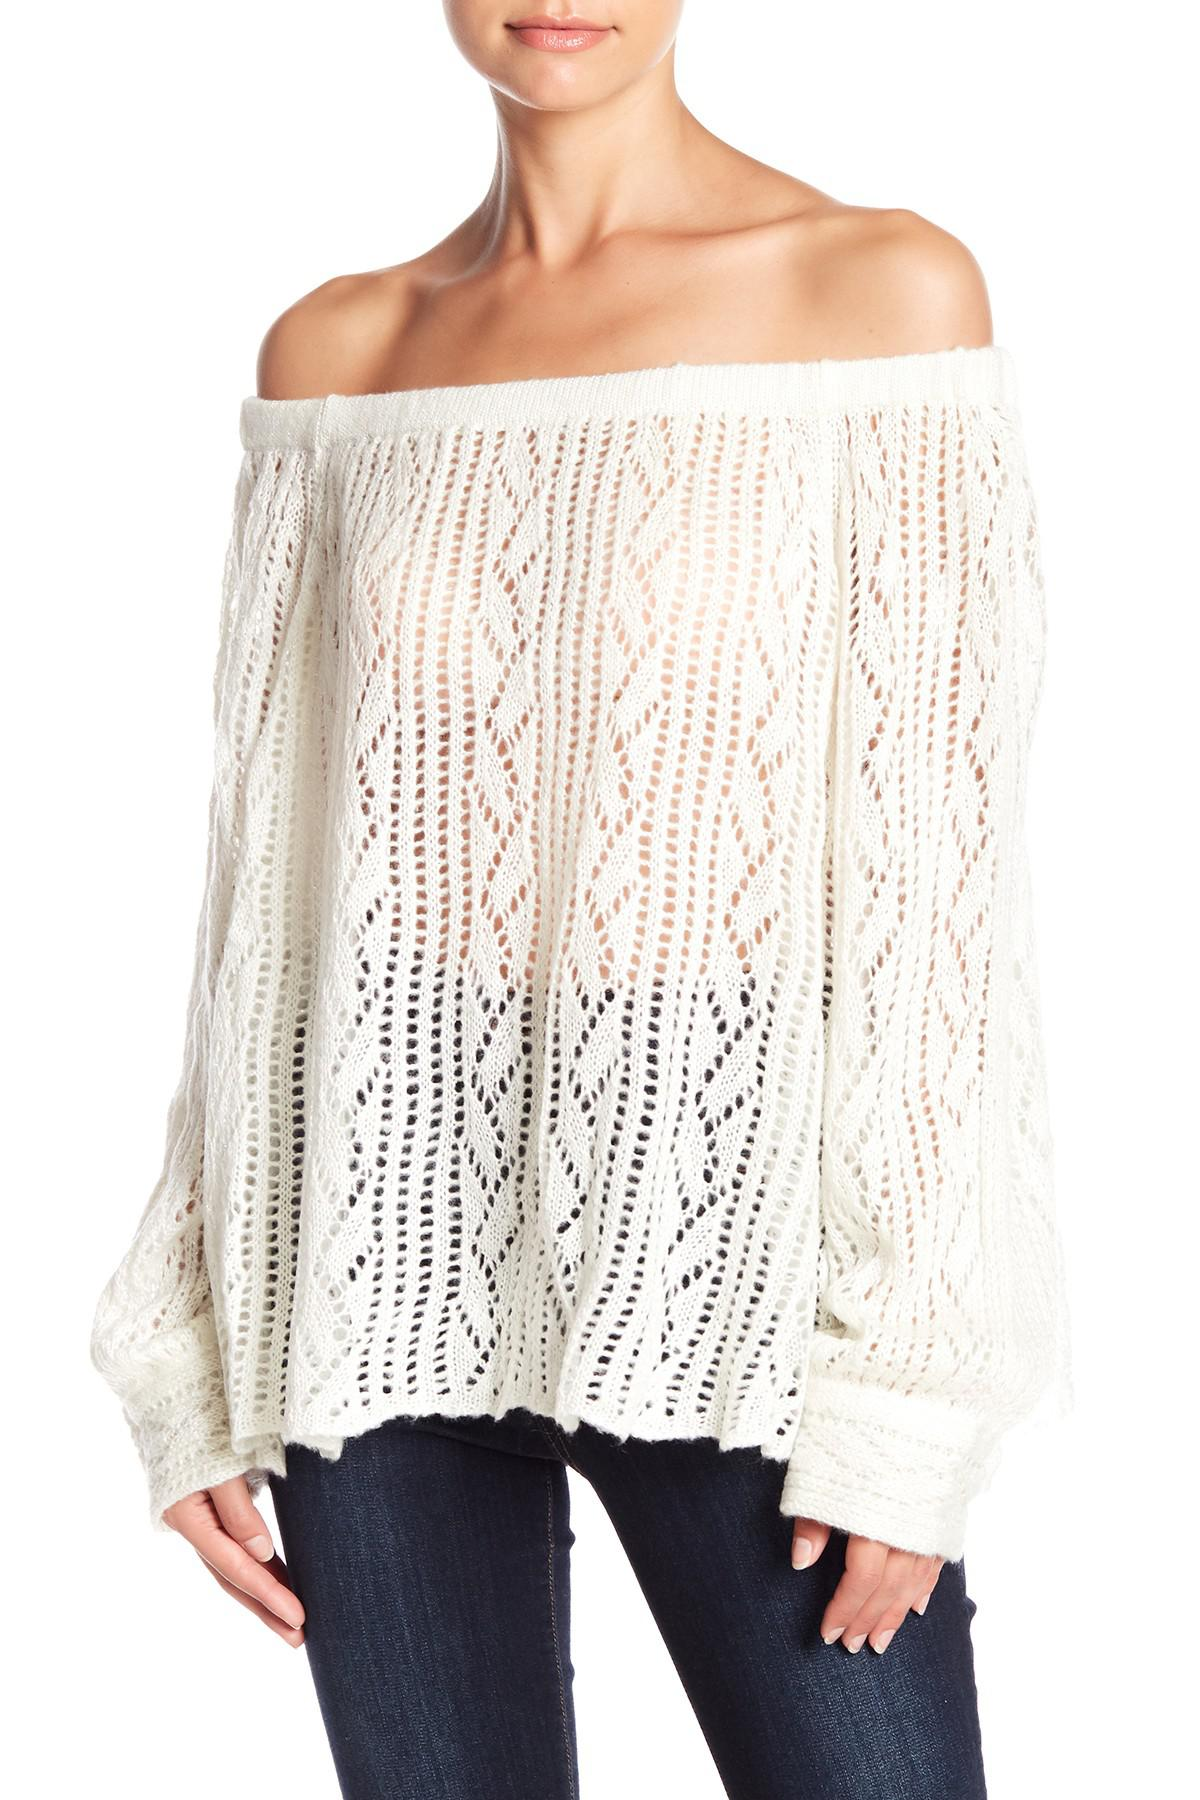 Odzież damska MUCHE ET MUCHETTE Poncho Knitted Scarves Sweater Acrylic Sequin Sparkle Top Knit Swetry i dzianina